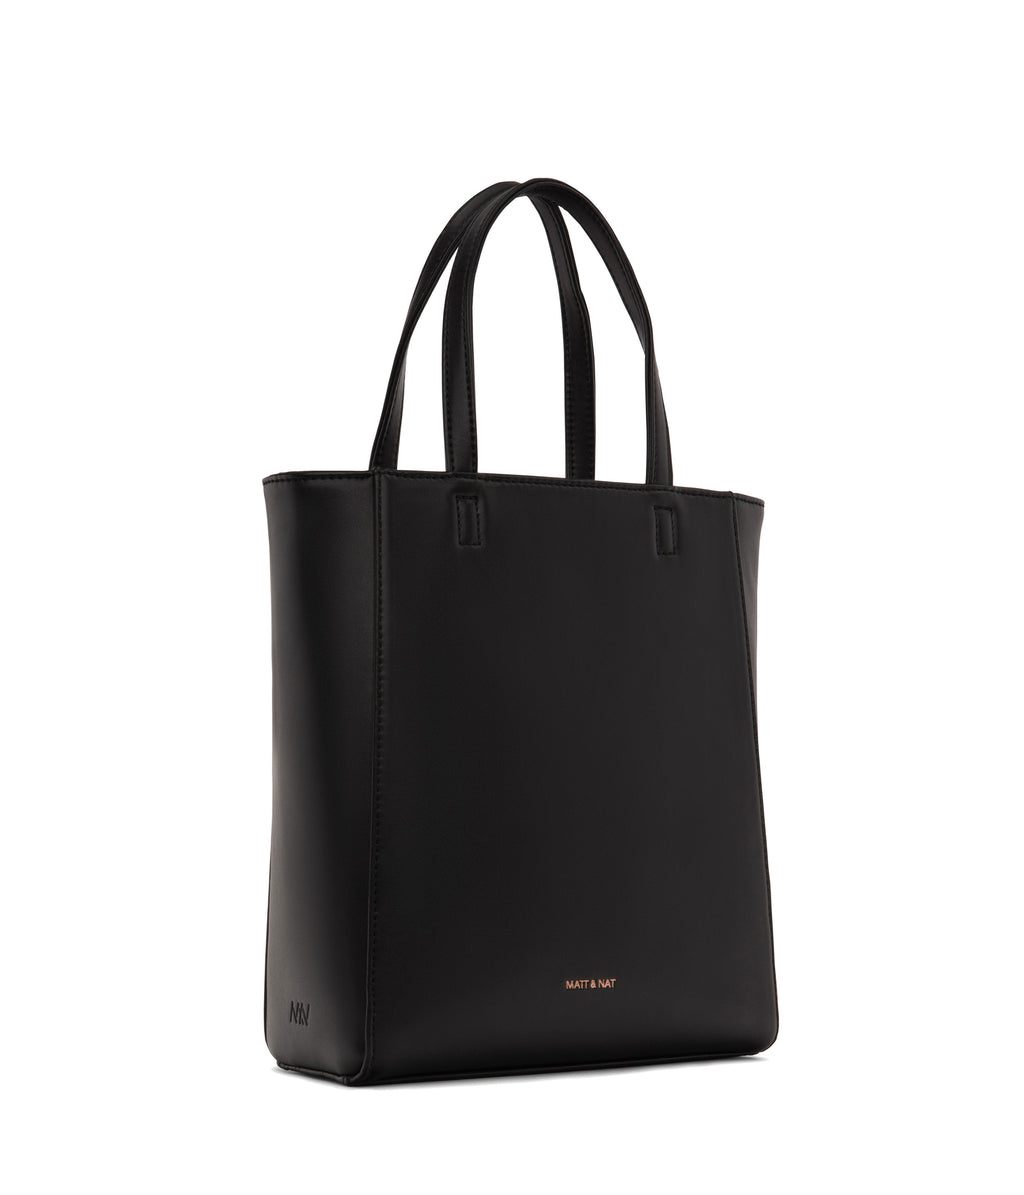 Matt & Nat Sella Tote Bag